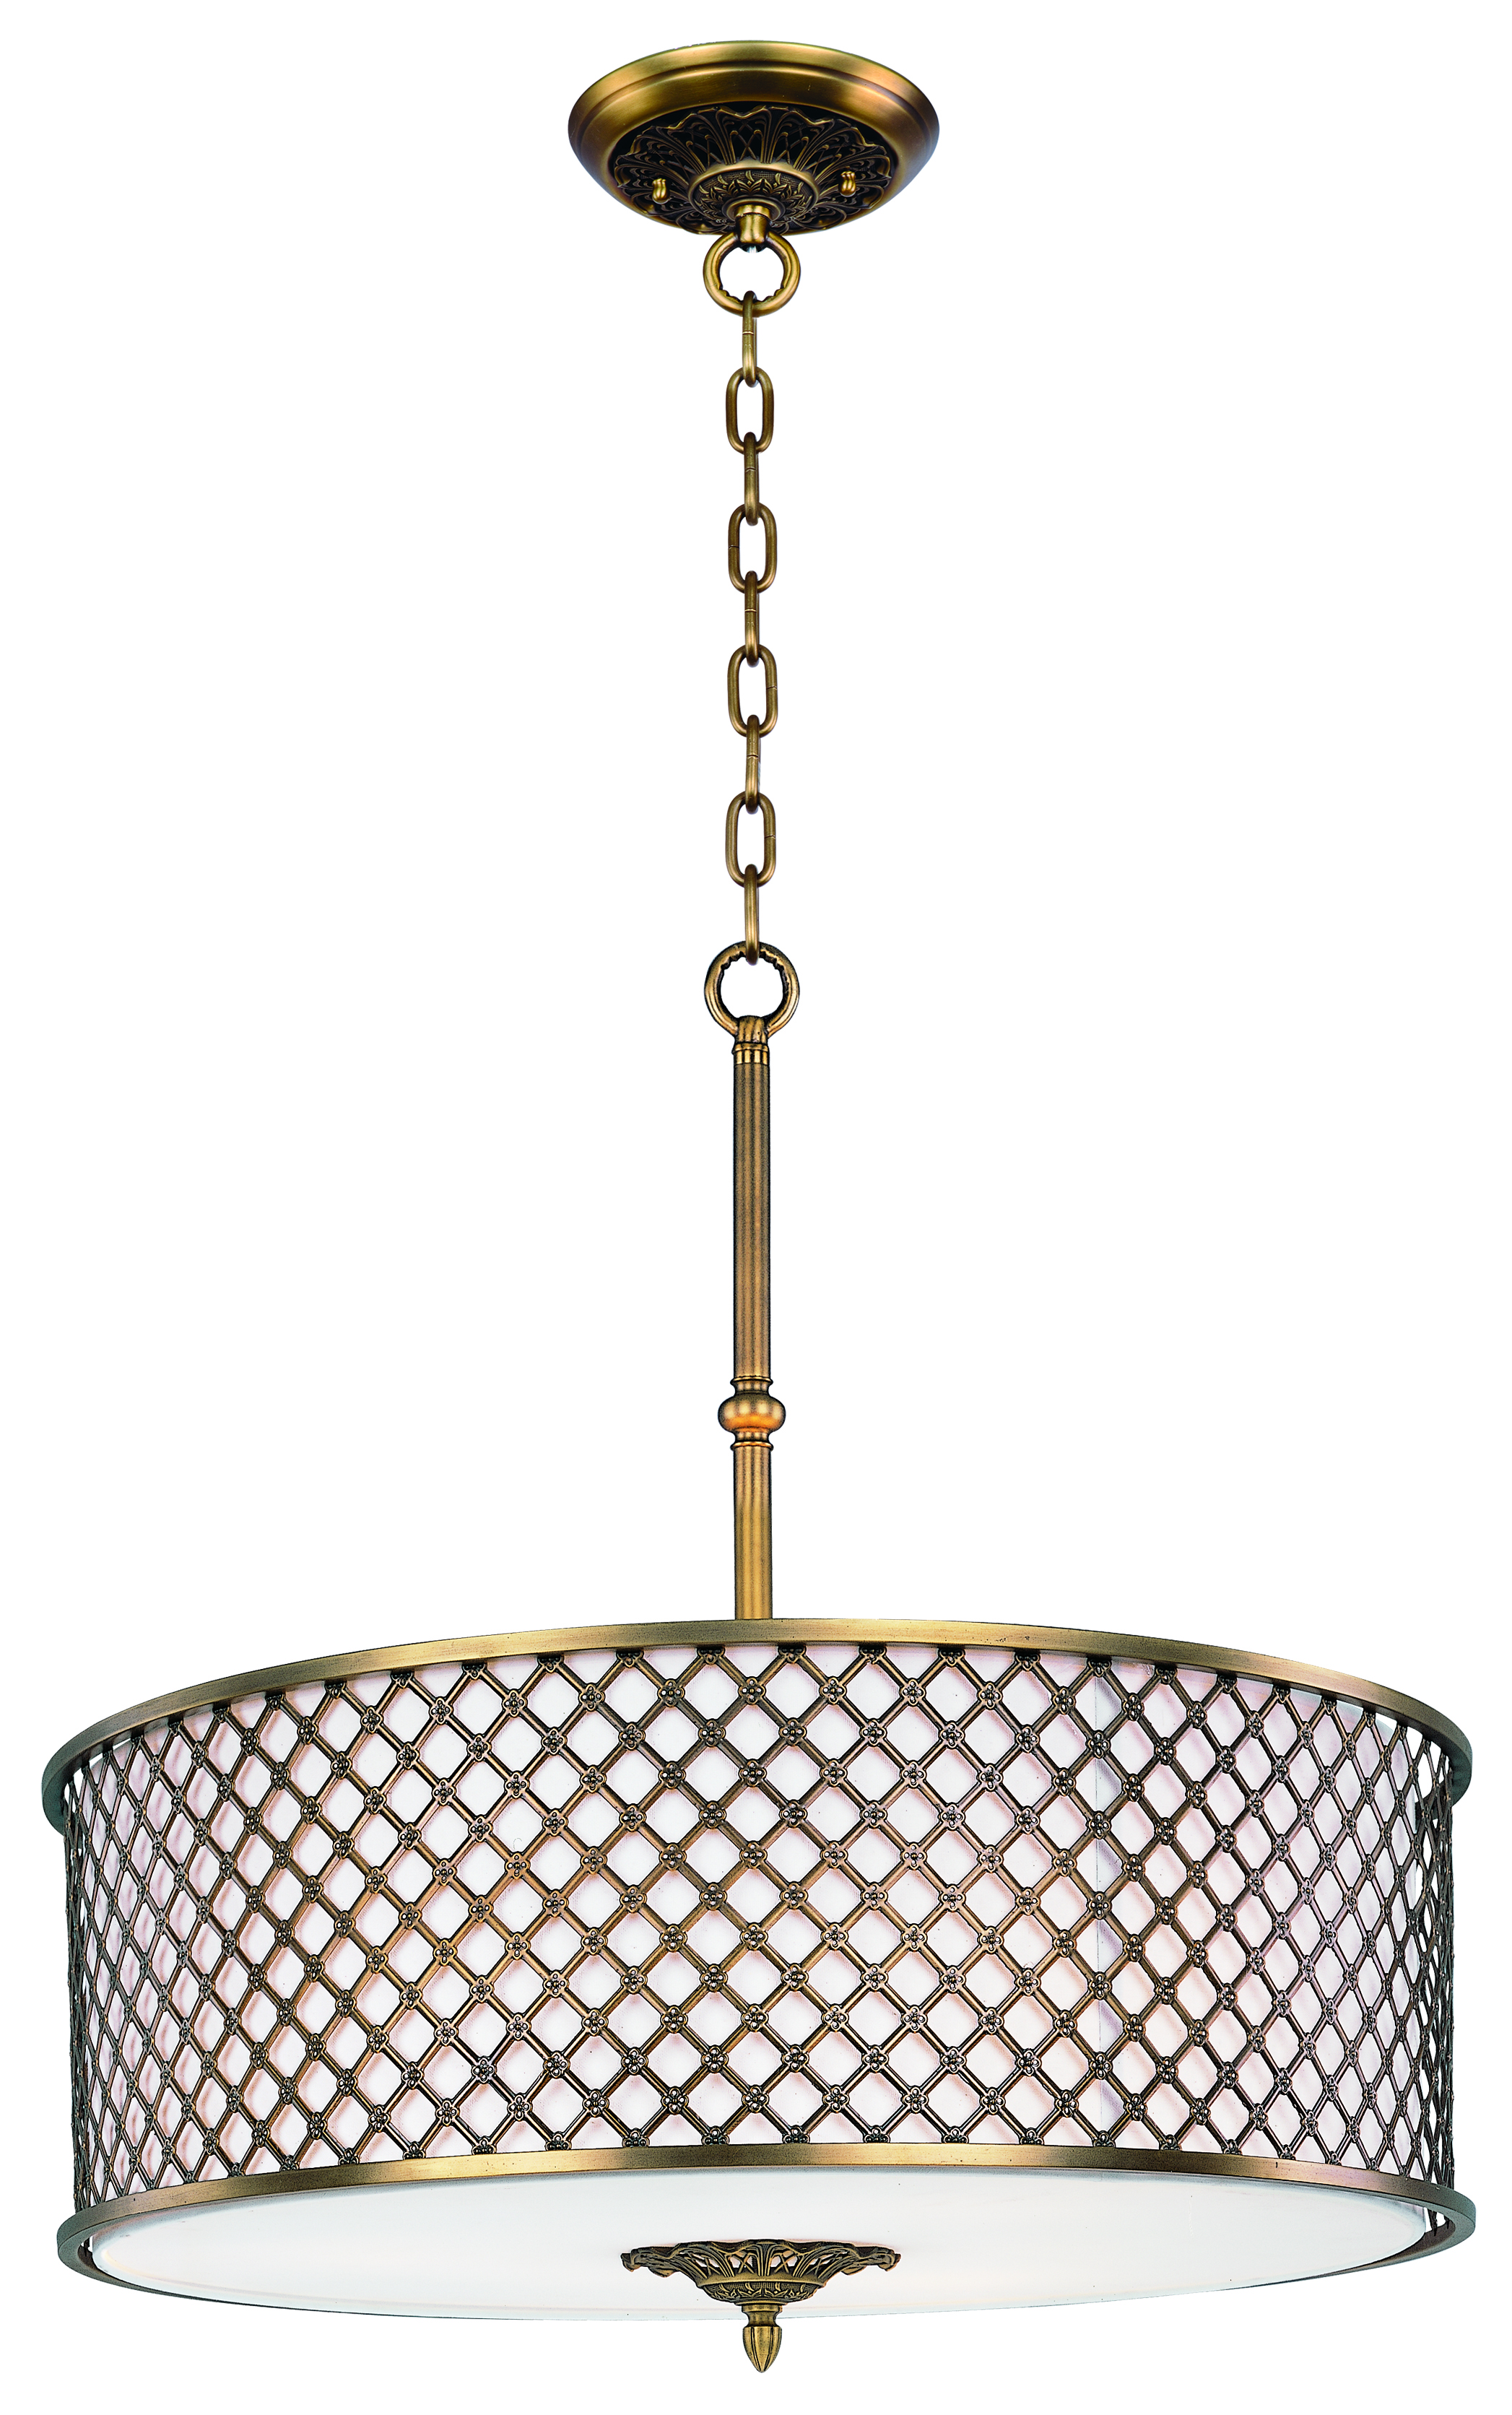 Manchester 6-light pendant